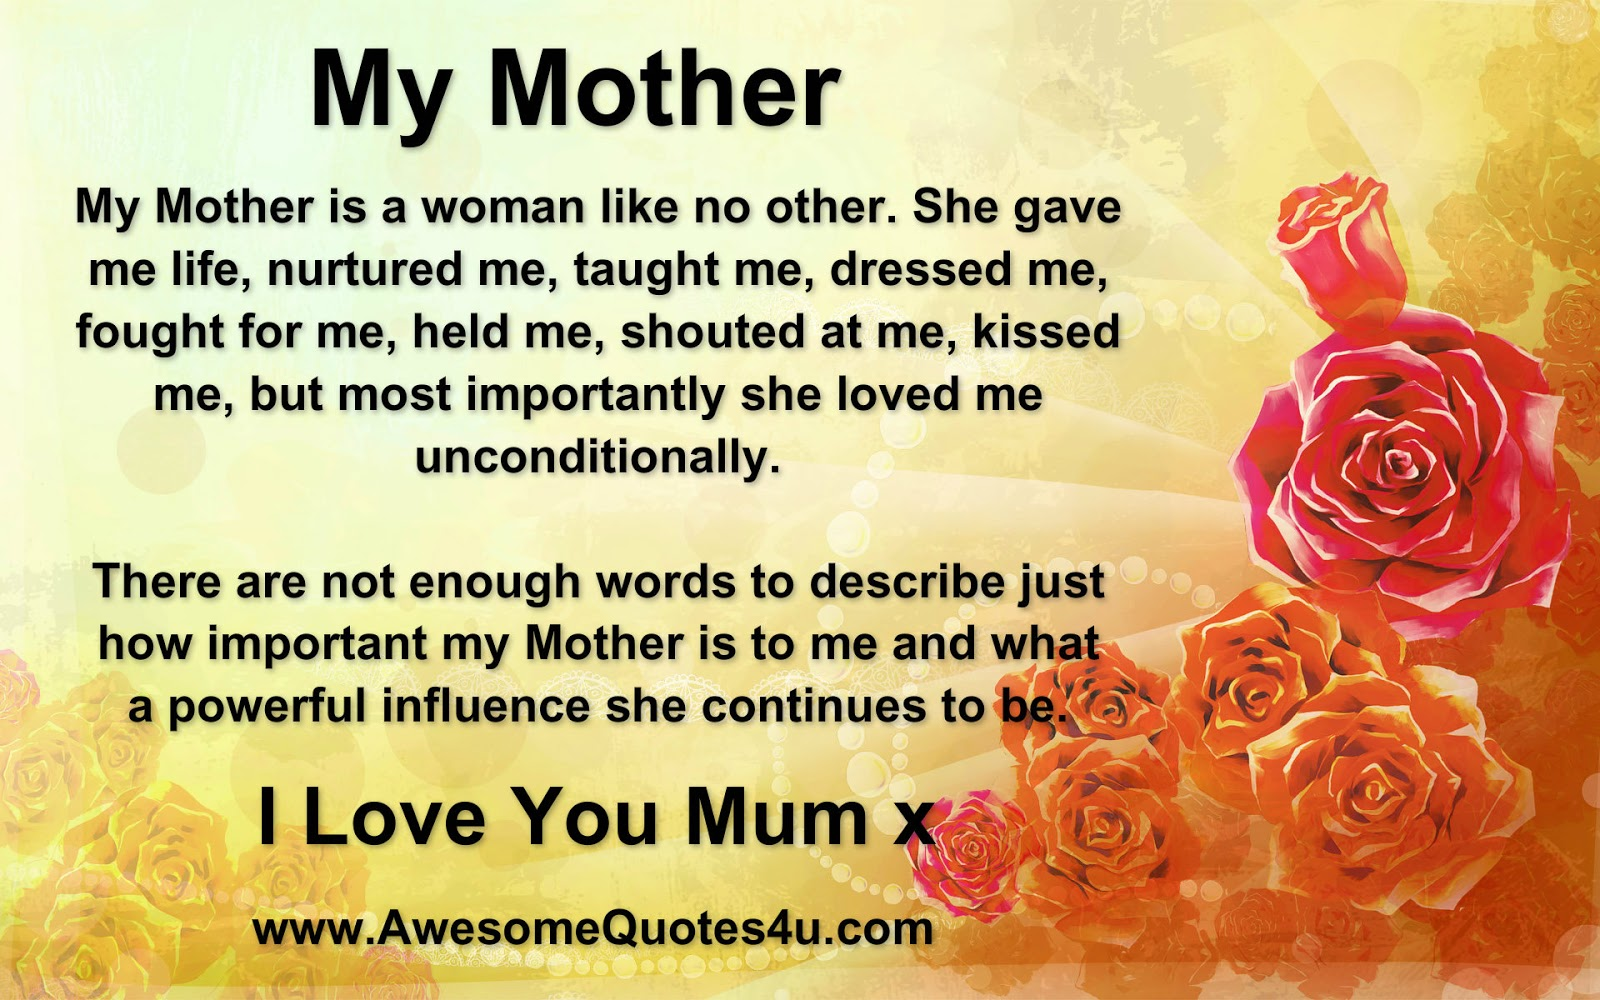 Awesome Quotes I Love You MumxI Love You Mom In Spanish